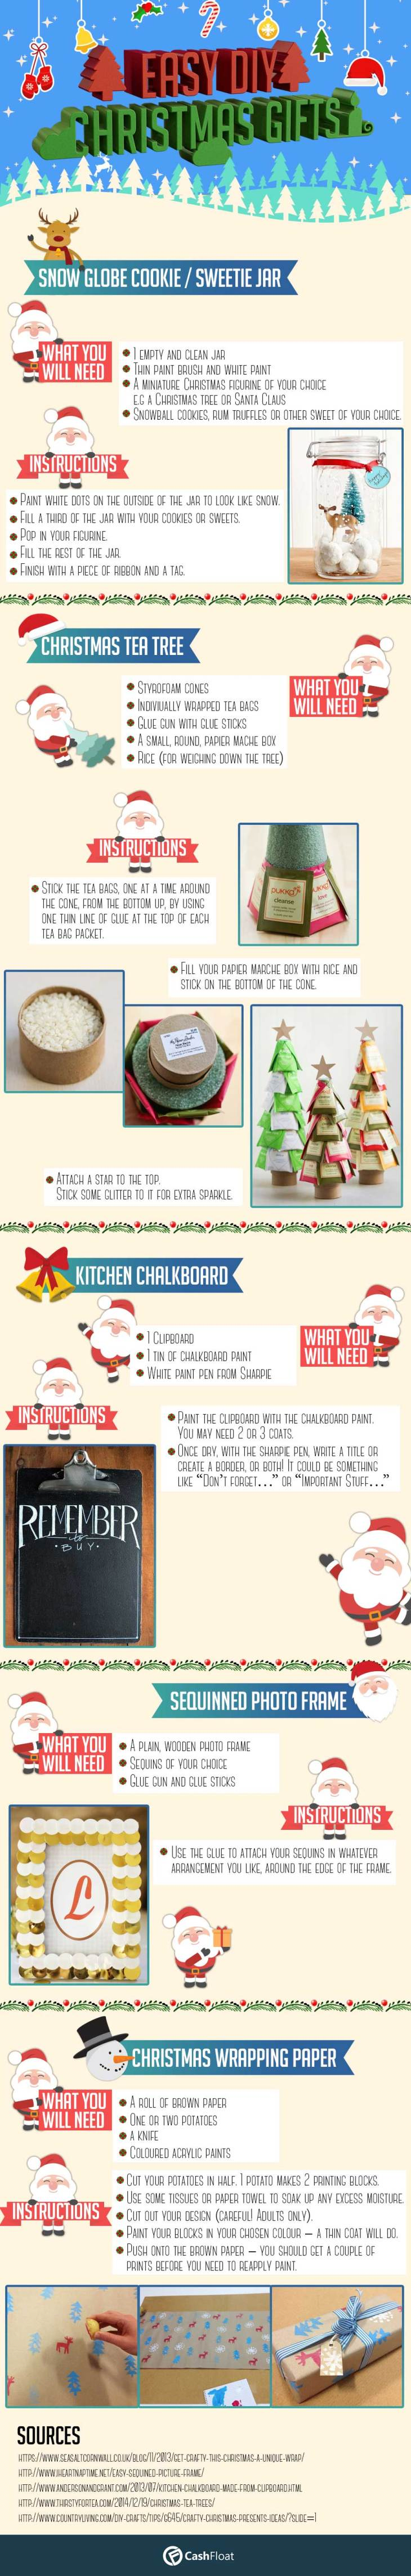 Amazing Christmas gifts you can do yourself